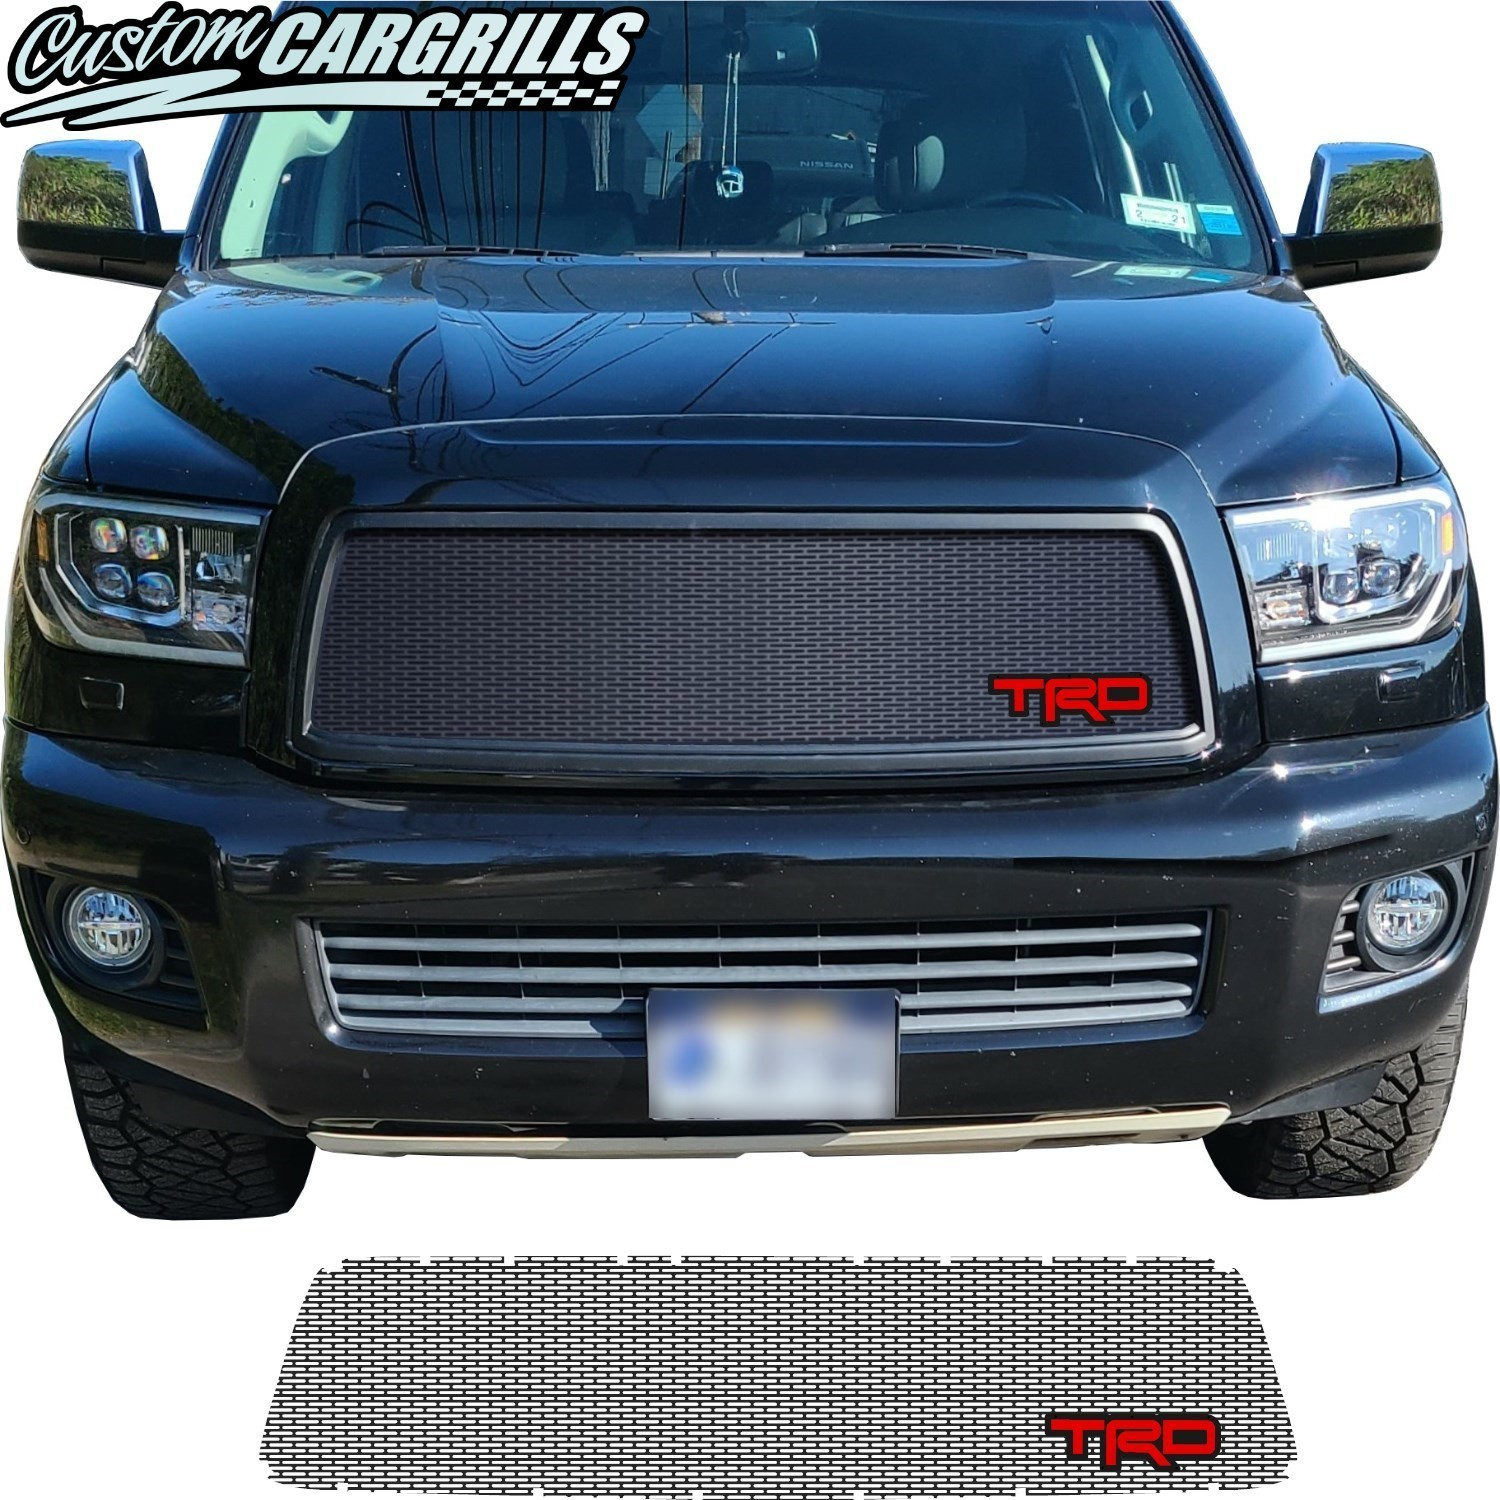 2008 - 2017 Toyota Sequoia Grill Mesh with TRD Emblem